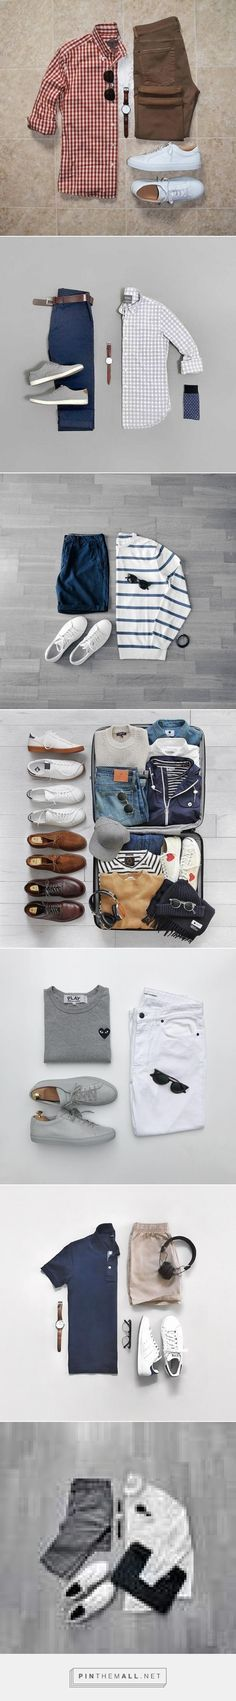 Moda Hombre Casual Ideas Outfit Grid 26 New Ideas Mens Fashion Blog, New Fashion, Trendy Fashion, Womens Fashion, Fashion Clothes, Fashion Outfits, Clothes Women, Fashion Ideas, Fashion Trends